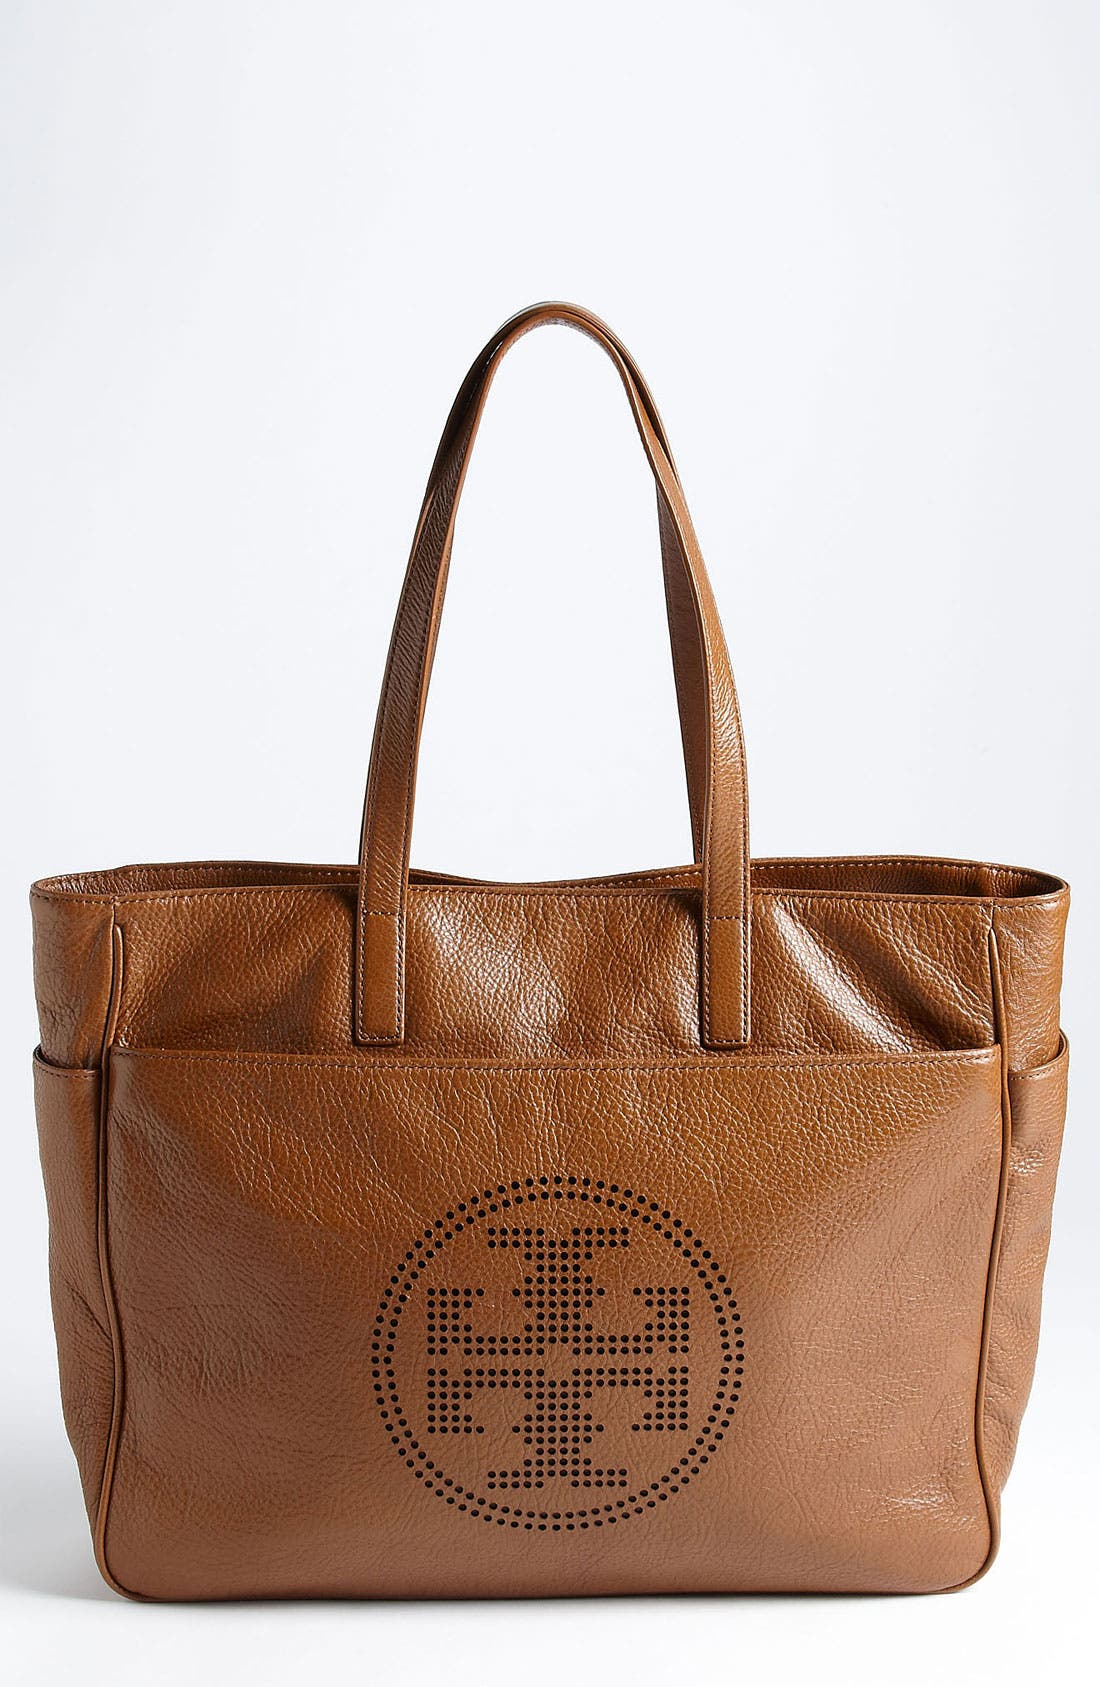 Alternate Image 1 Selected - Tory Burch Perforated Logo Classic Leather Tote